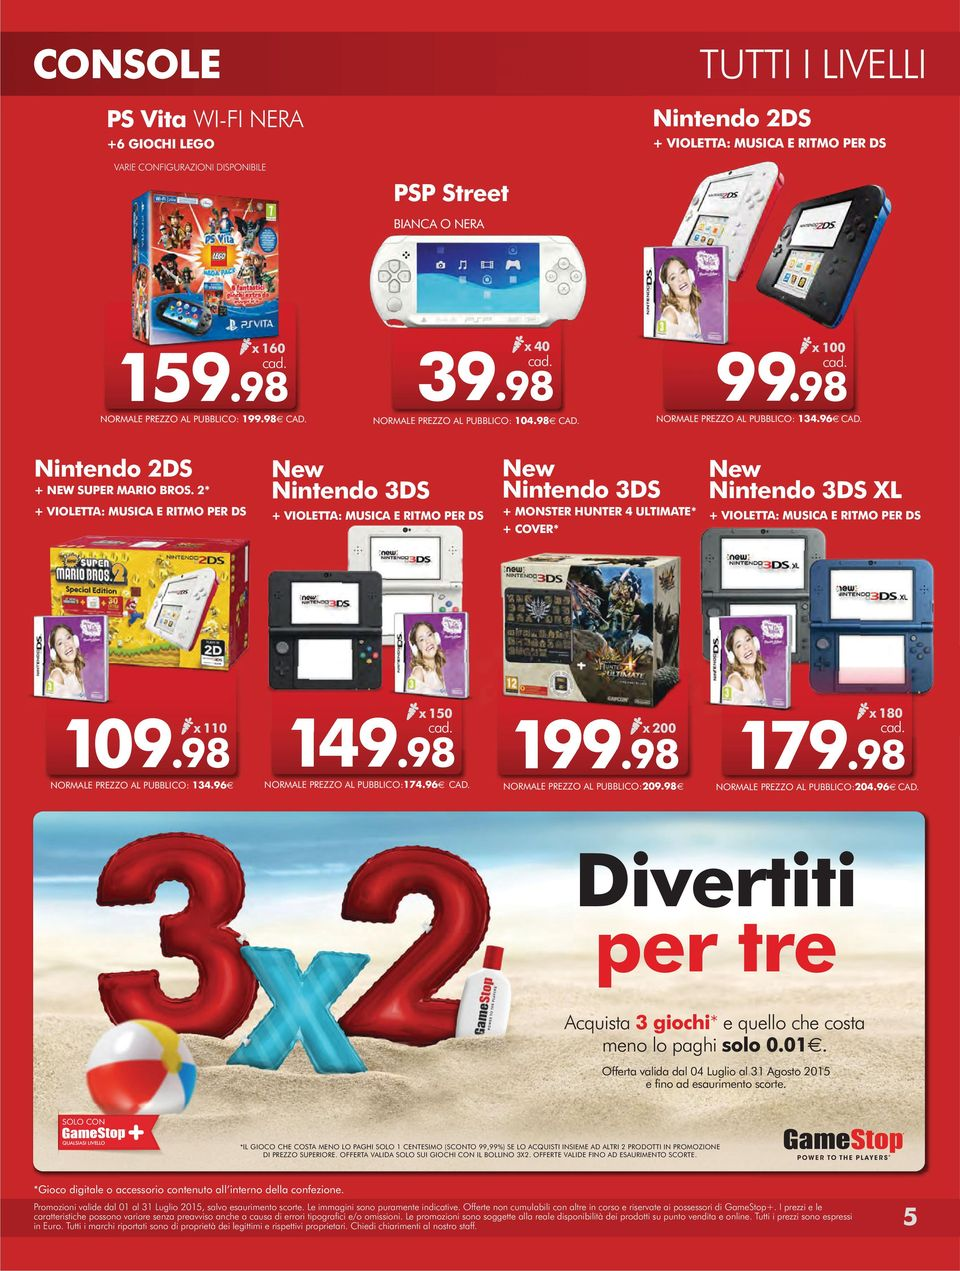 2* + VIOLETTA: MUSICA E RITMO PER DS New Nintendo 3DS + VIOLETTA: MUSICA E RITMO PER DS New Nintendo 3DS + MONSTER HUNTER 4 ULTIMATE* + COVER* New Nintendo 3DS XL + VIOLETTA: MUSICA E RITMO PER DS x